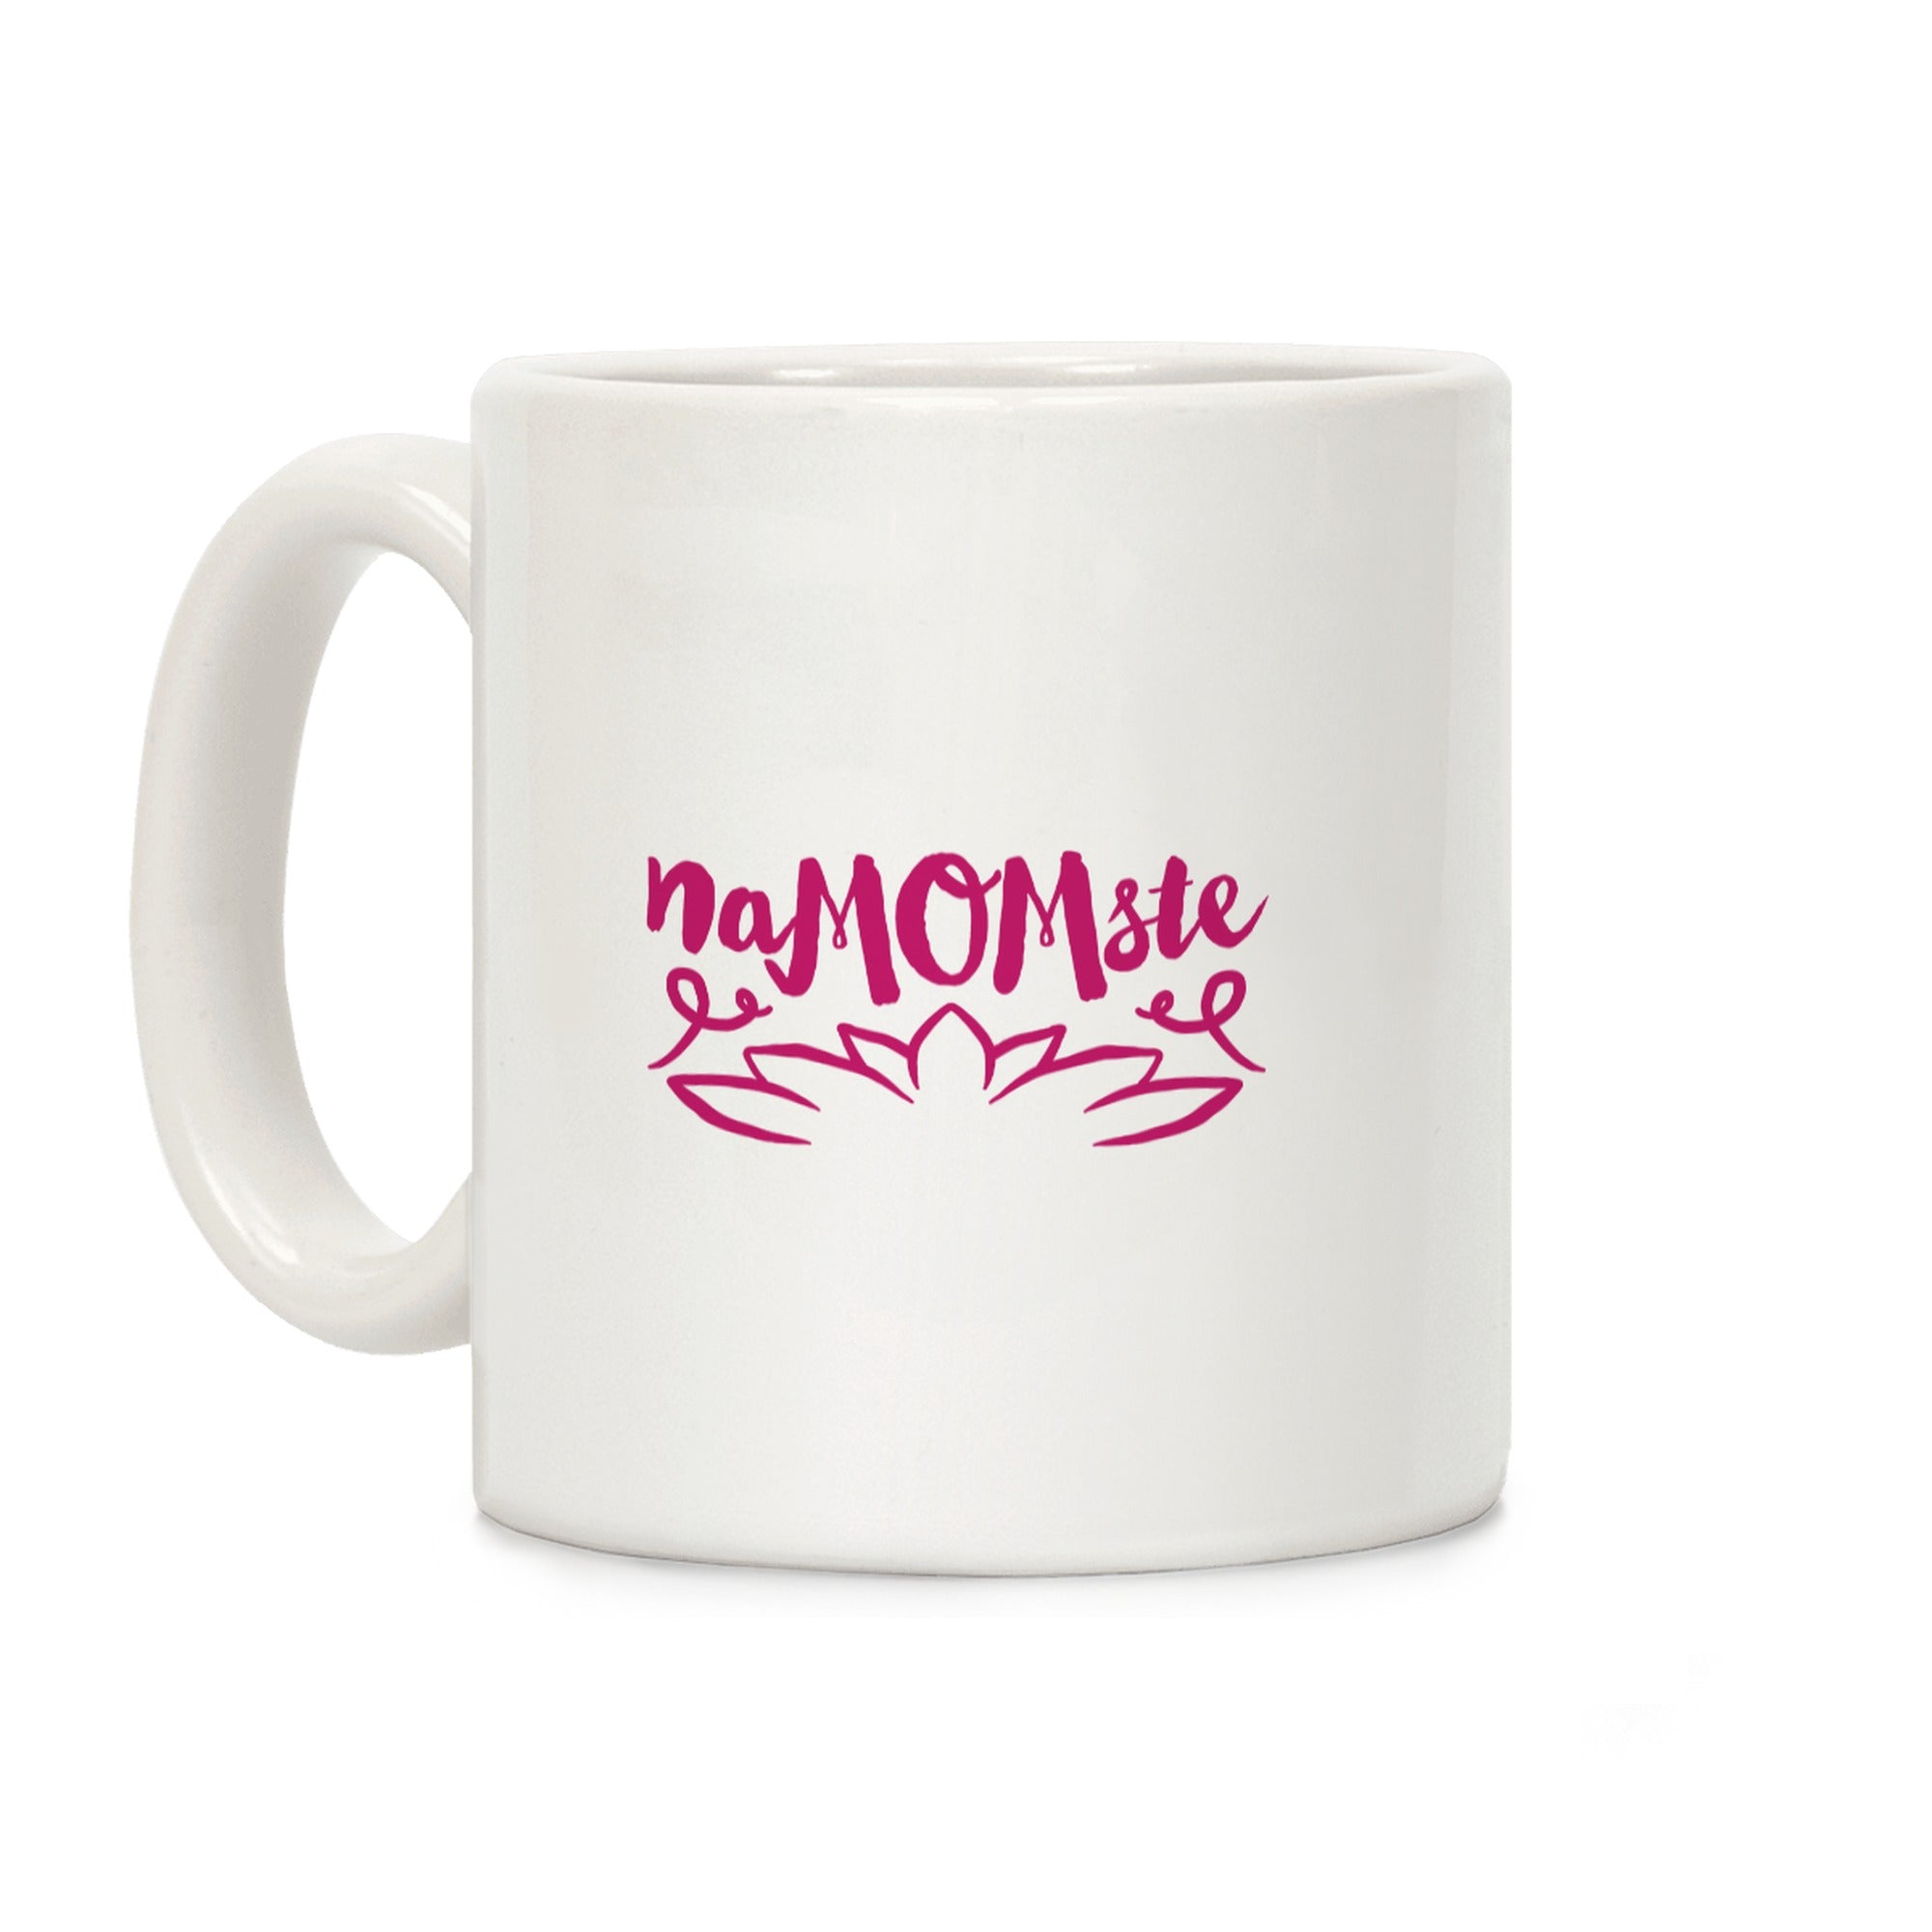 Namomste Yoga Mom Parody Ceramic Coffee Mug by Loo